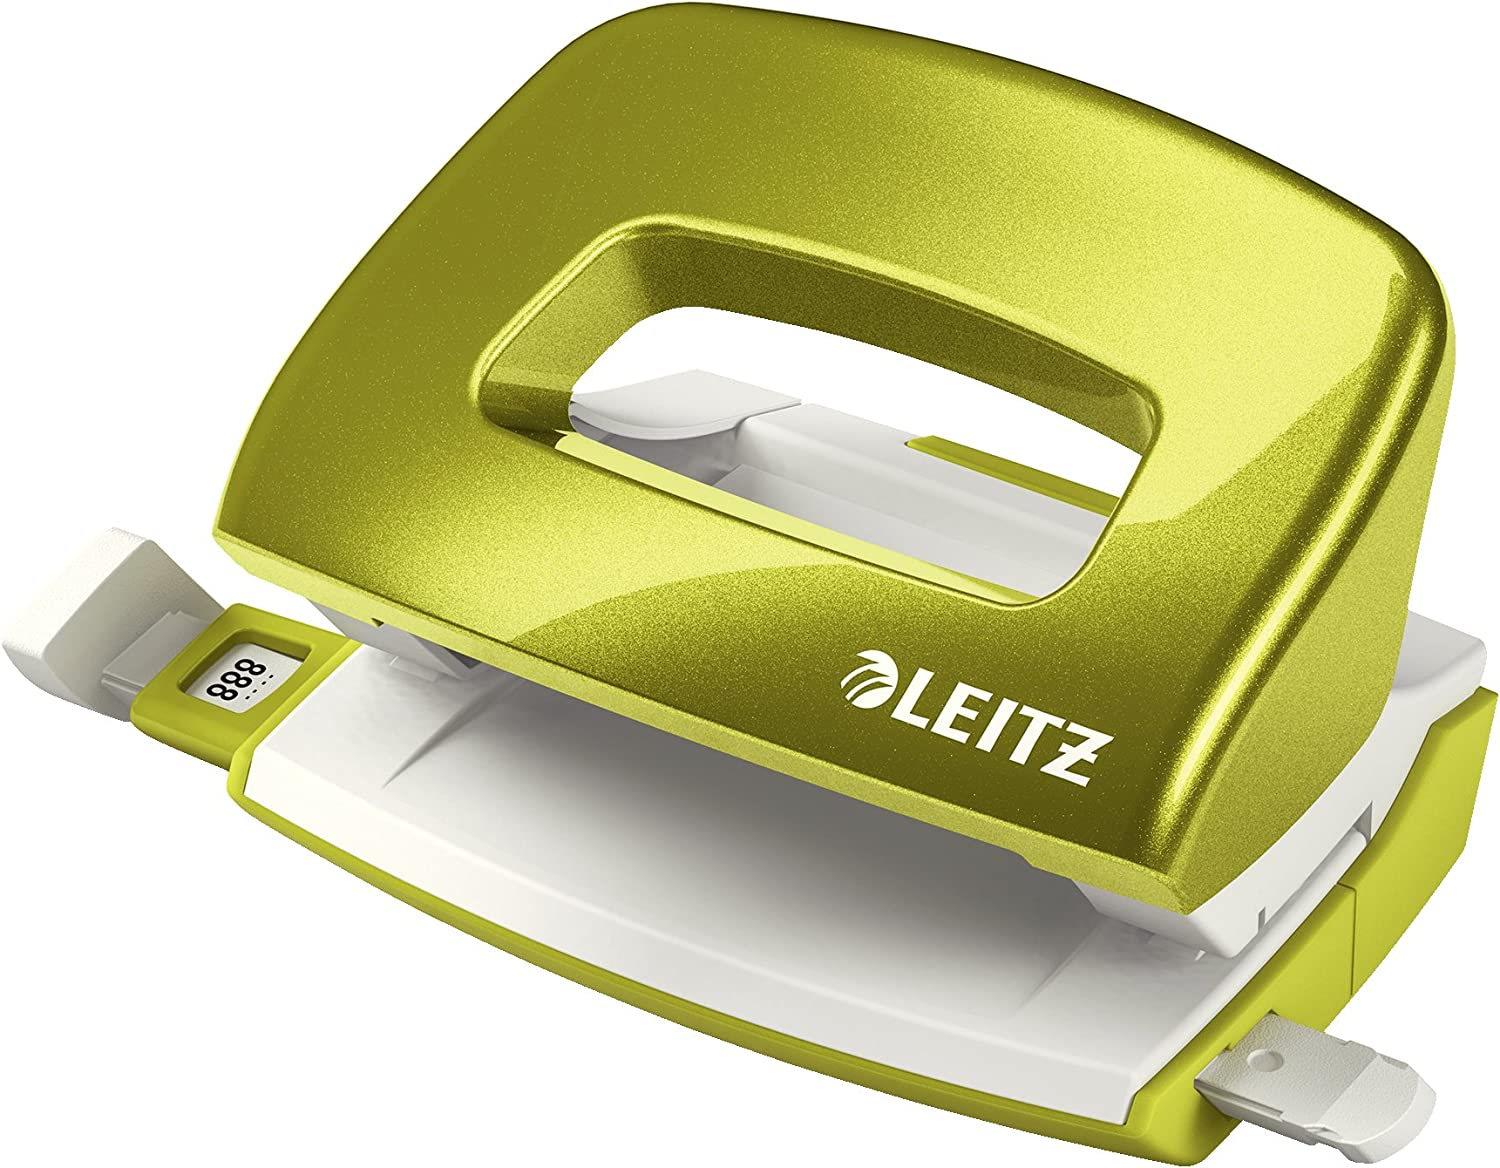 Leitz Hole Punch Guide Bar with Format Markings Wow Range 30 Sheets Metal